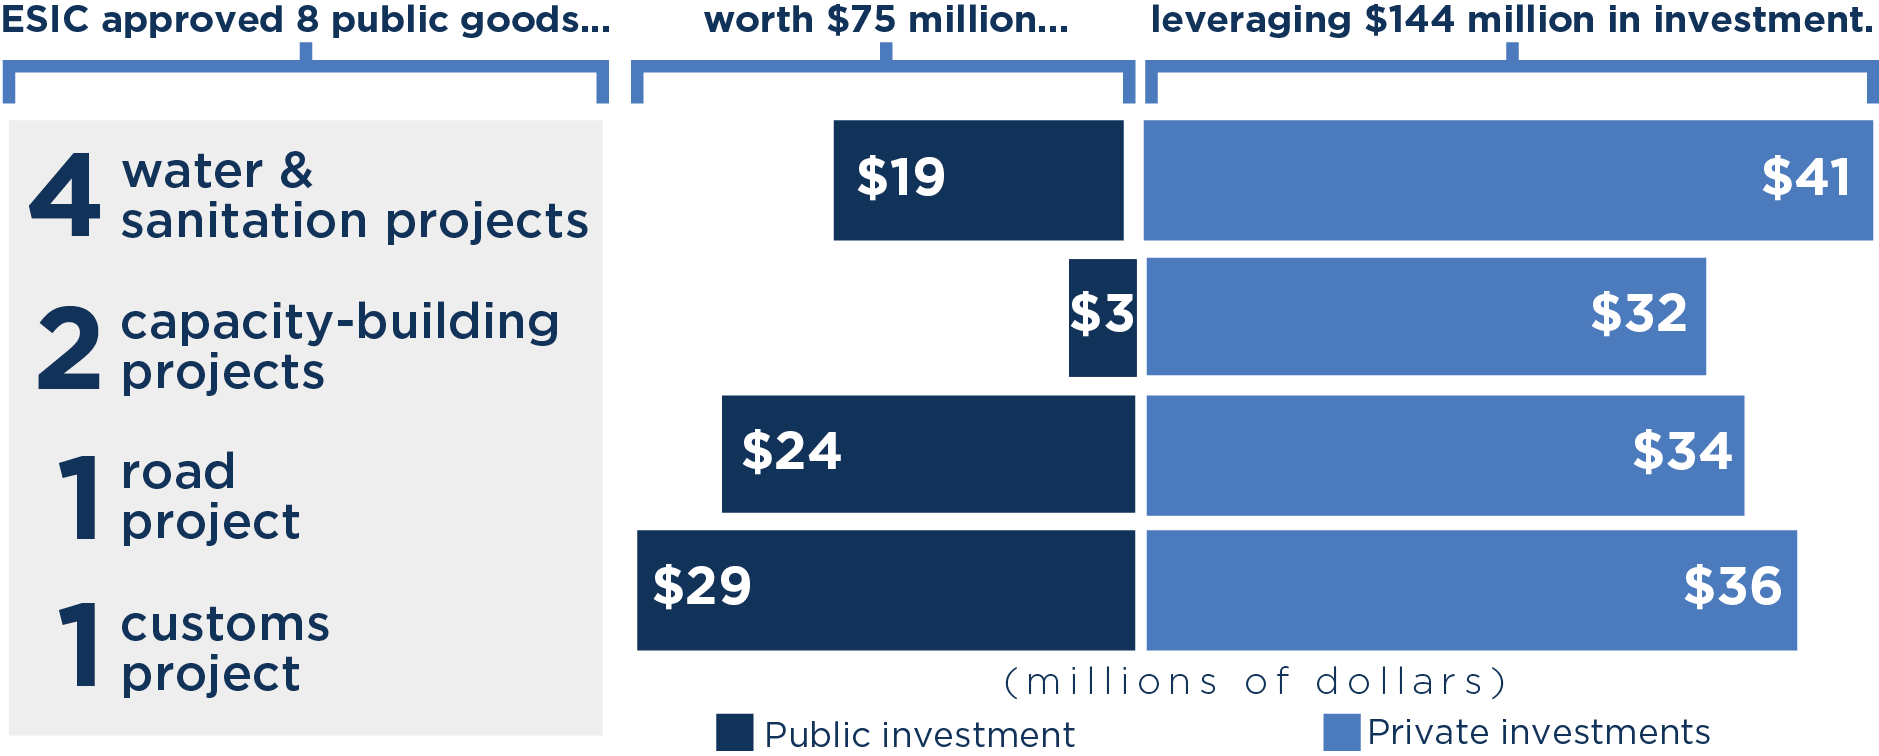 Investments in public goods